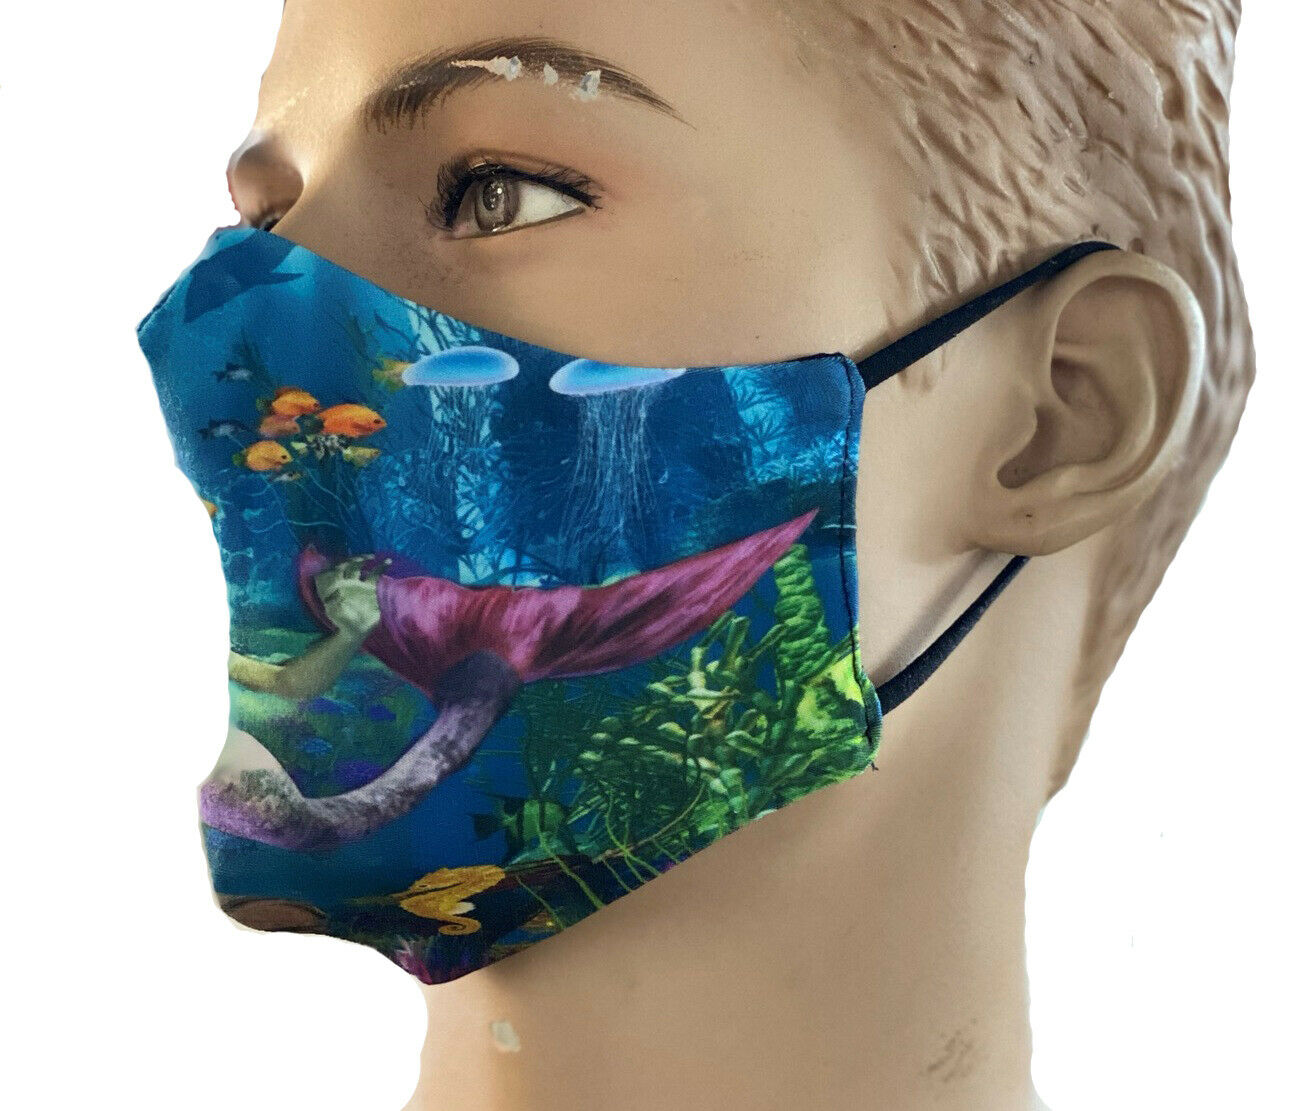 Mermaid And Creatures Of The Sea Underwater Printed Reusable Washable Face Covering Masks